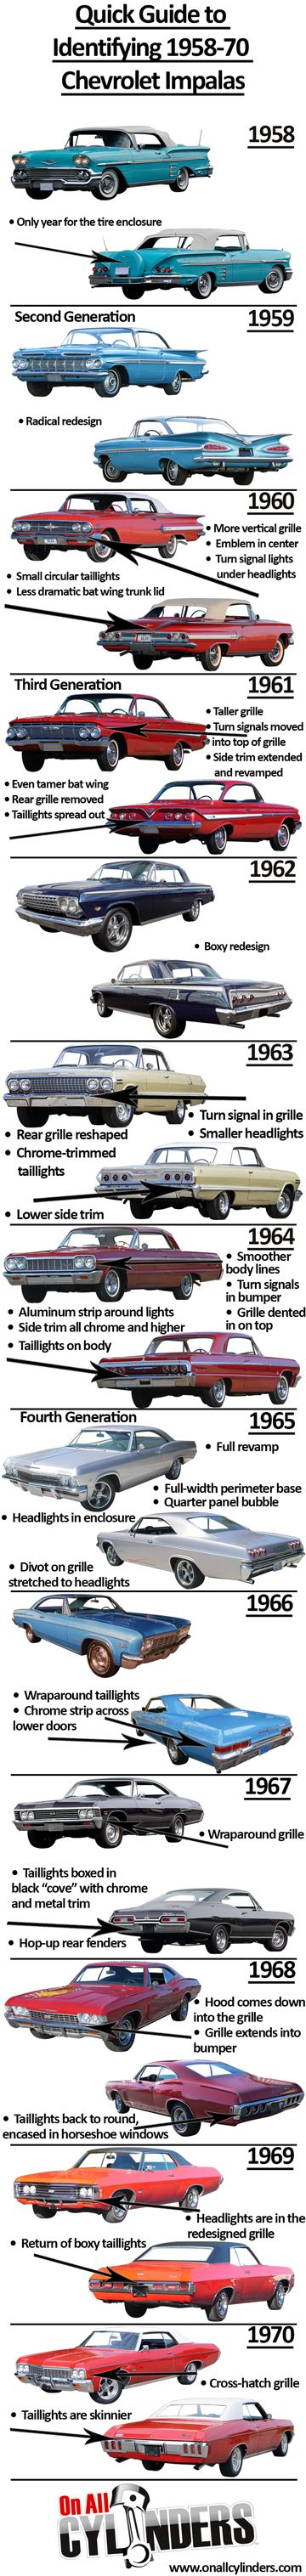 1961 ford falcon for sale racingjunk classifieds - Vehicle Identification Chart For Chevy Impalas 1958 1970